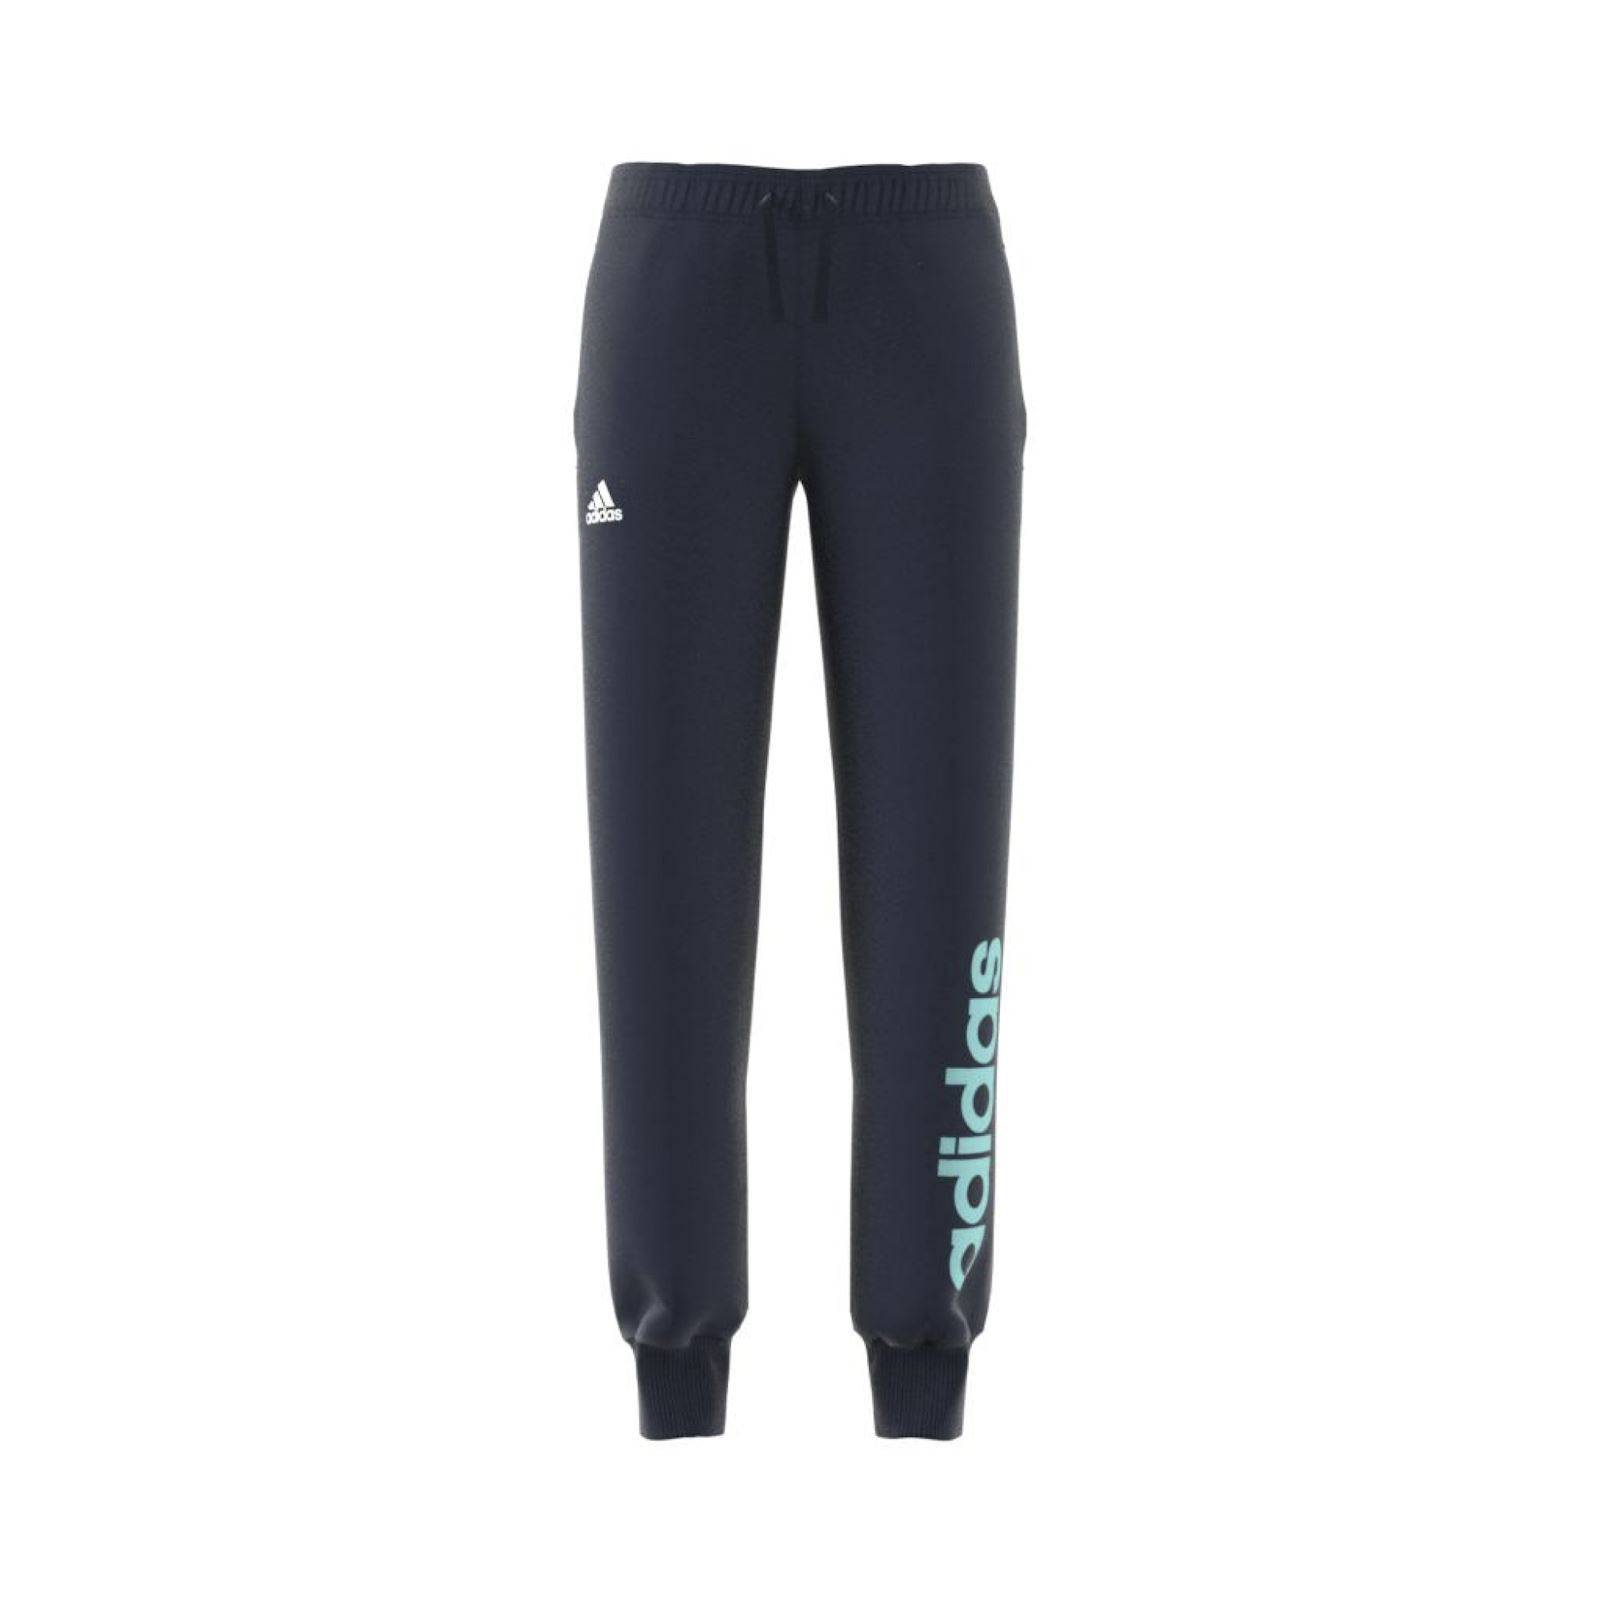 adidas performance pantalon jogging bleu marine ebay. Black Bedroom Furniture Sets. Home Design Ideas